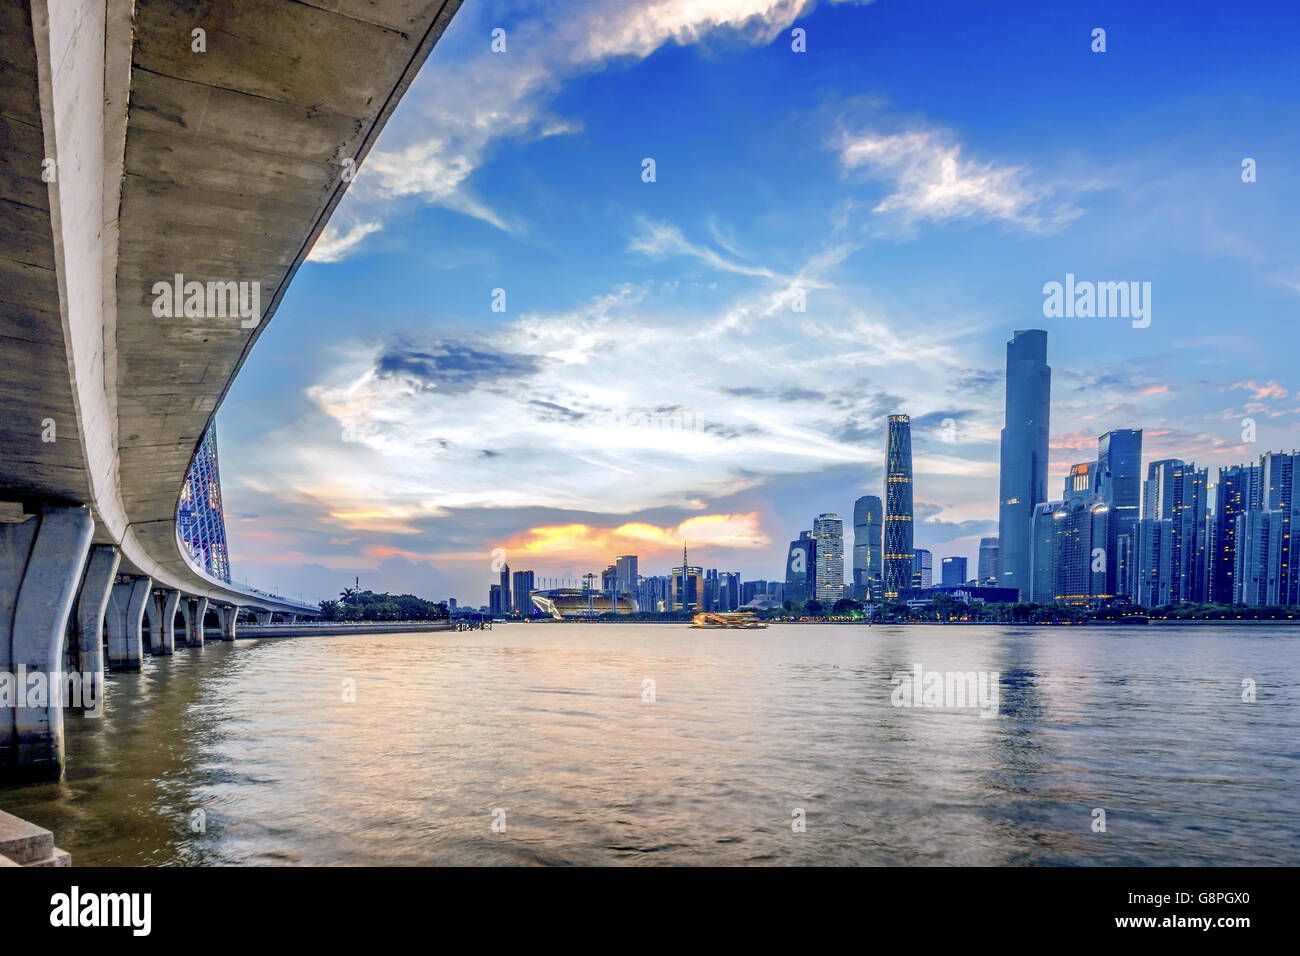 Guangzhou Pearl River New City - Stock Image